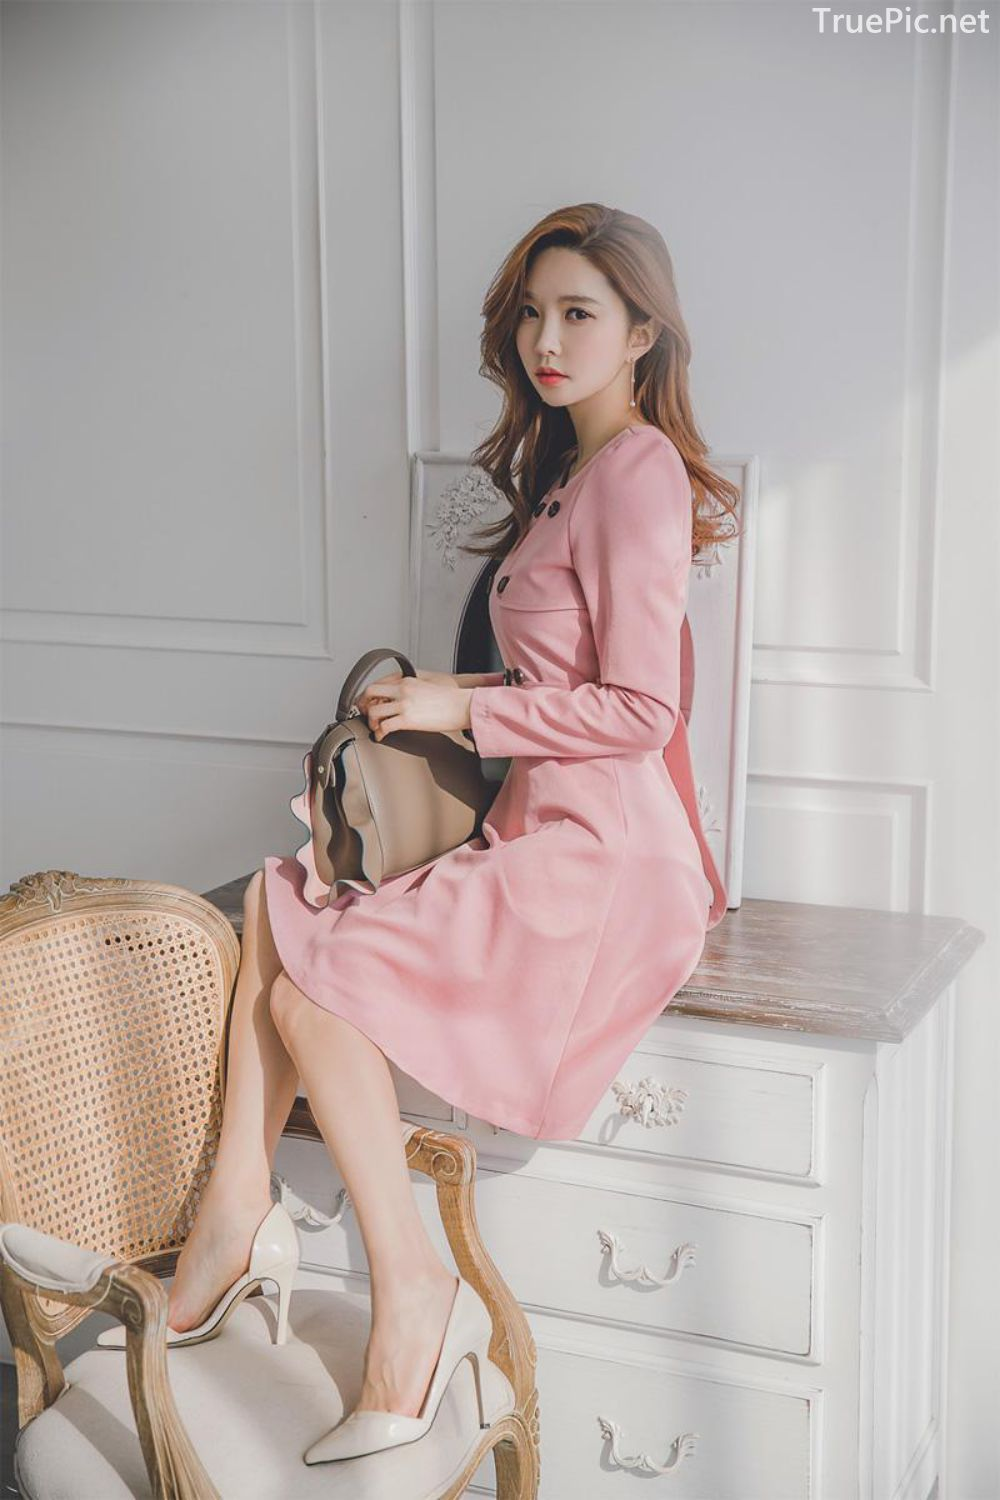 Korean-Hot-Fashion-Model-Park-Soo-Yeon-7-Outfit-sets-for-a-week-TruePic.net- Picture-7